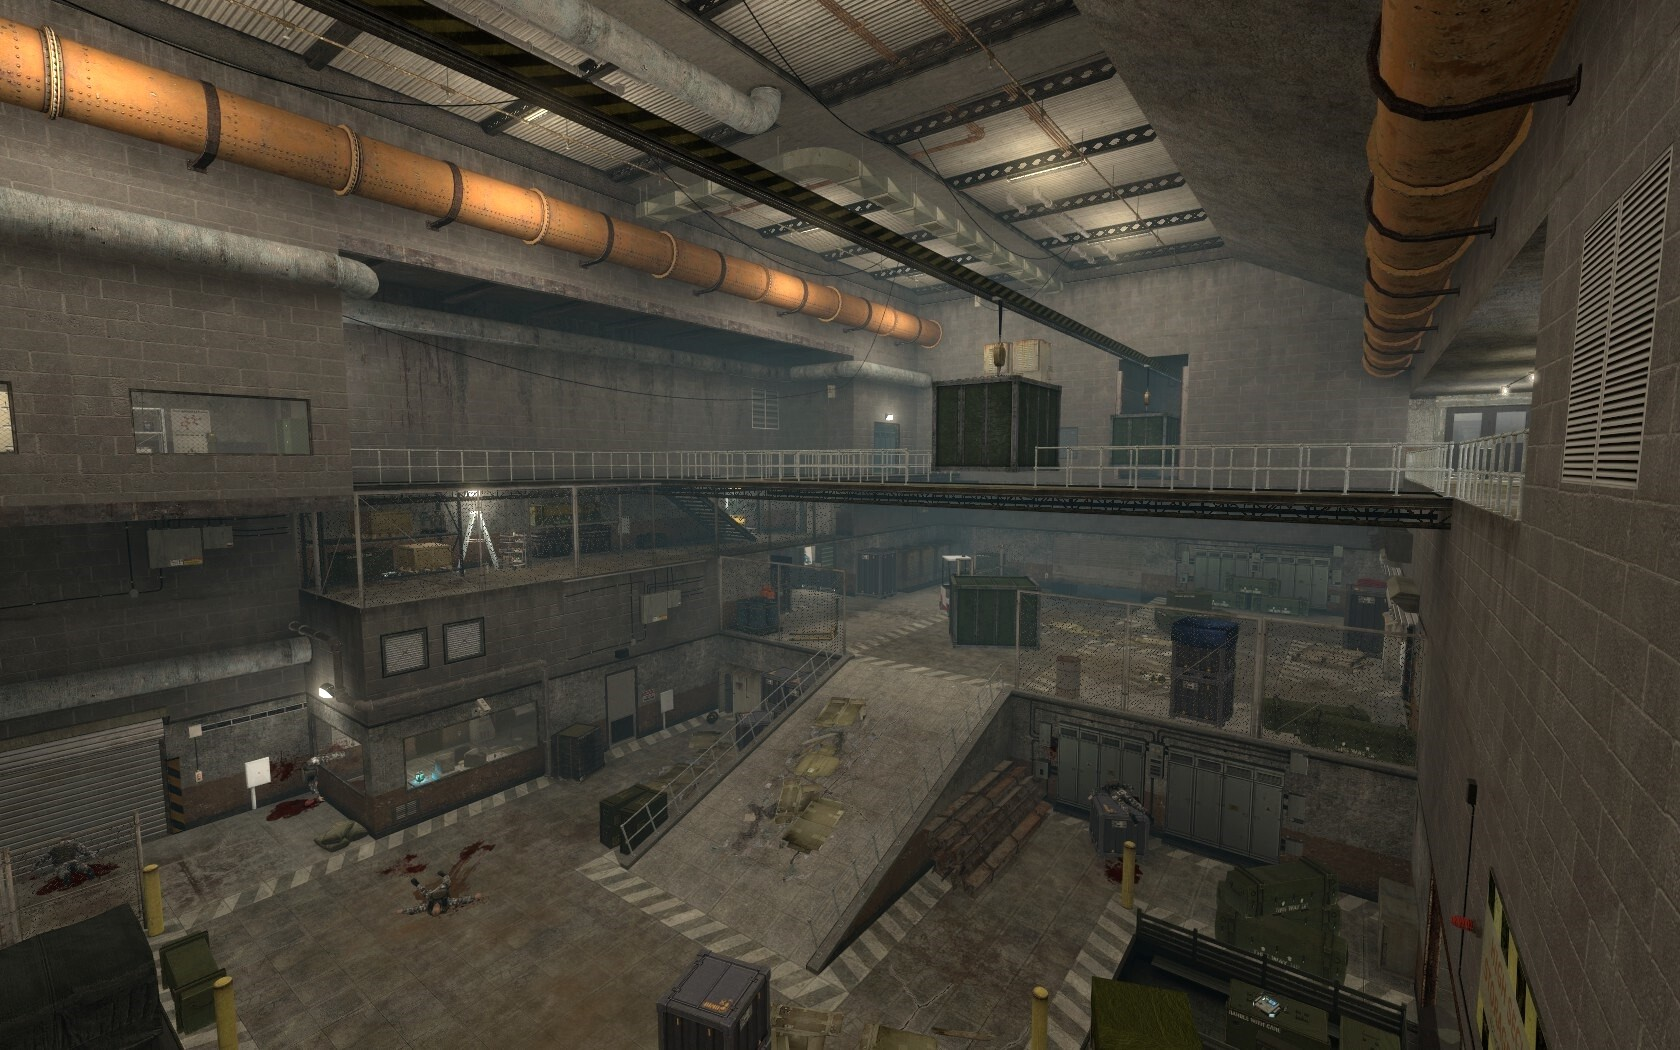 The second warehouse is the area that the player visits the most. I ensured that the environment changed when the player got to it to make it more interesting.